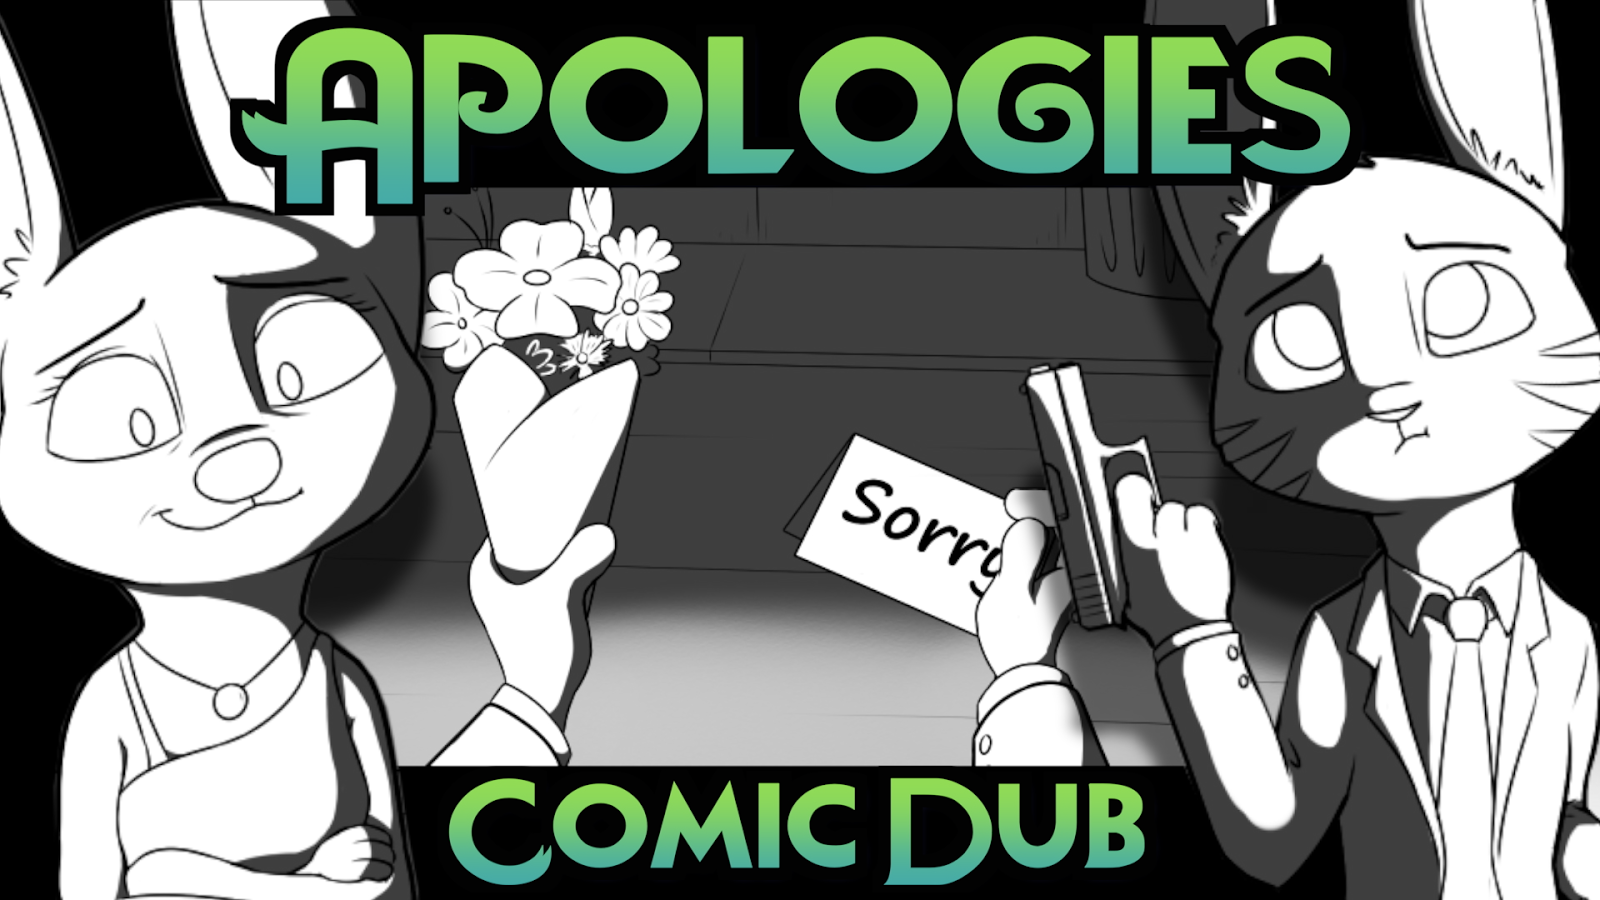 Comic Dub: Apologies (dub by Mickelpickel and CasVoiceActs)